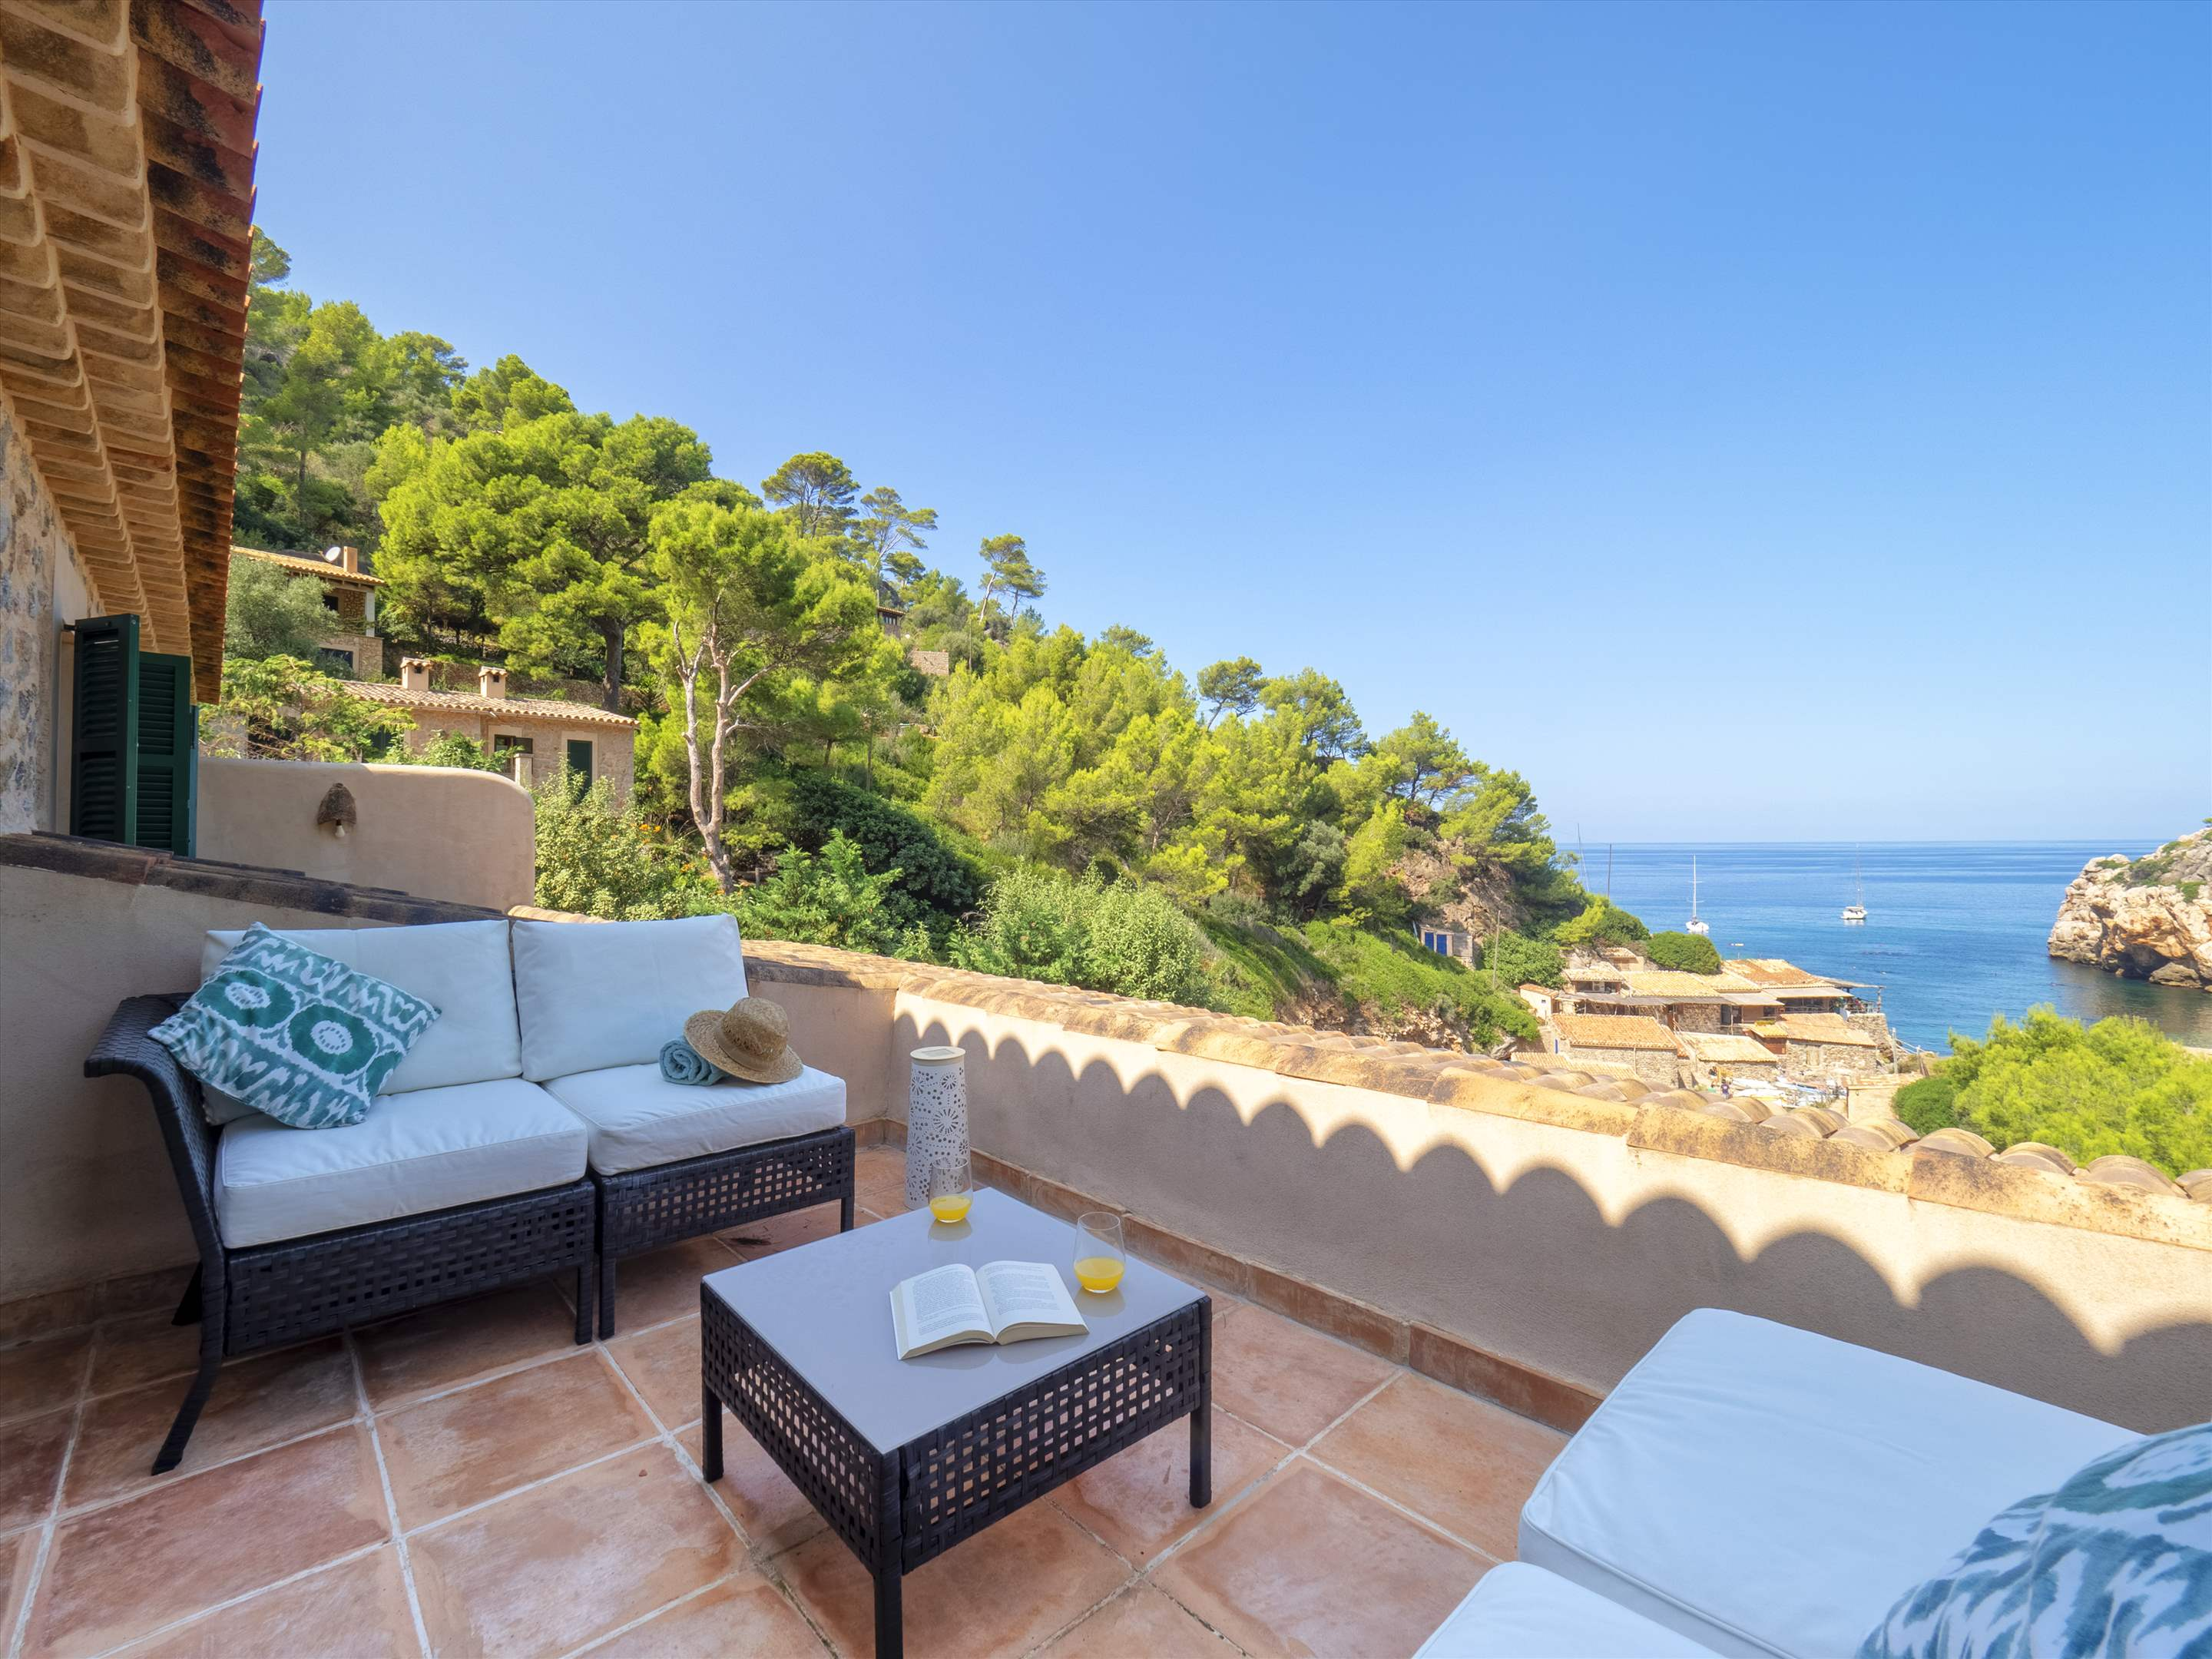 Sa Cala, 4 bedroom villa in Soller & Deia, Majorca Photo #3